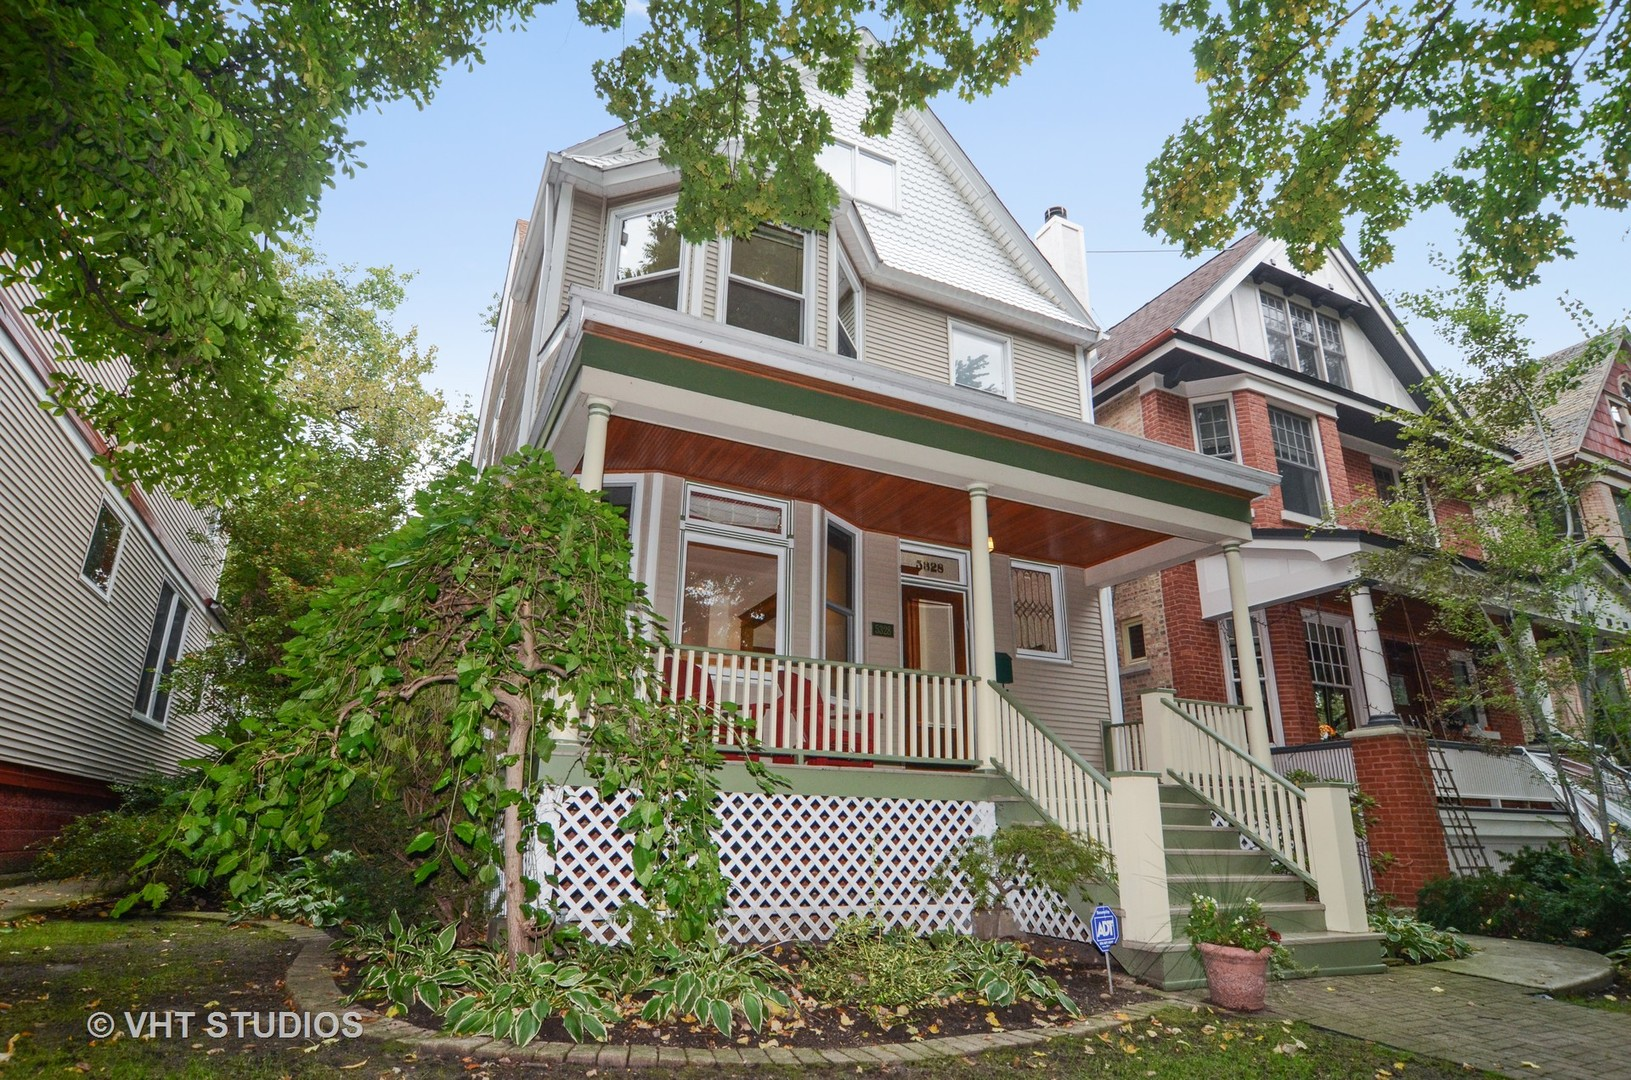 4 House in Edgewater